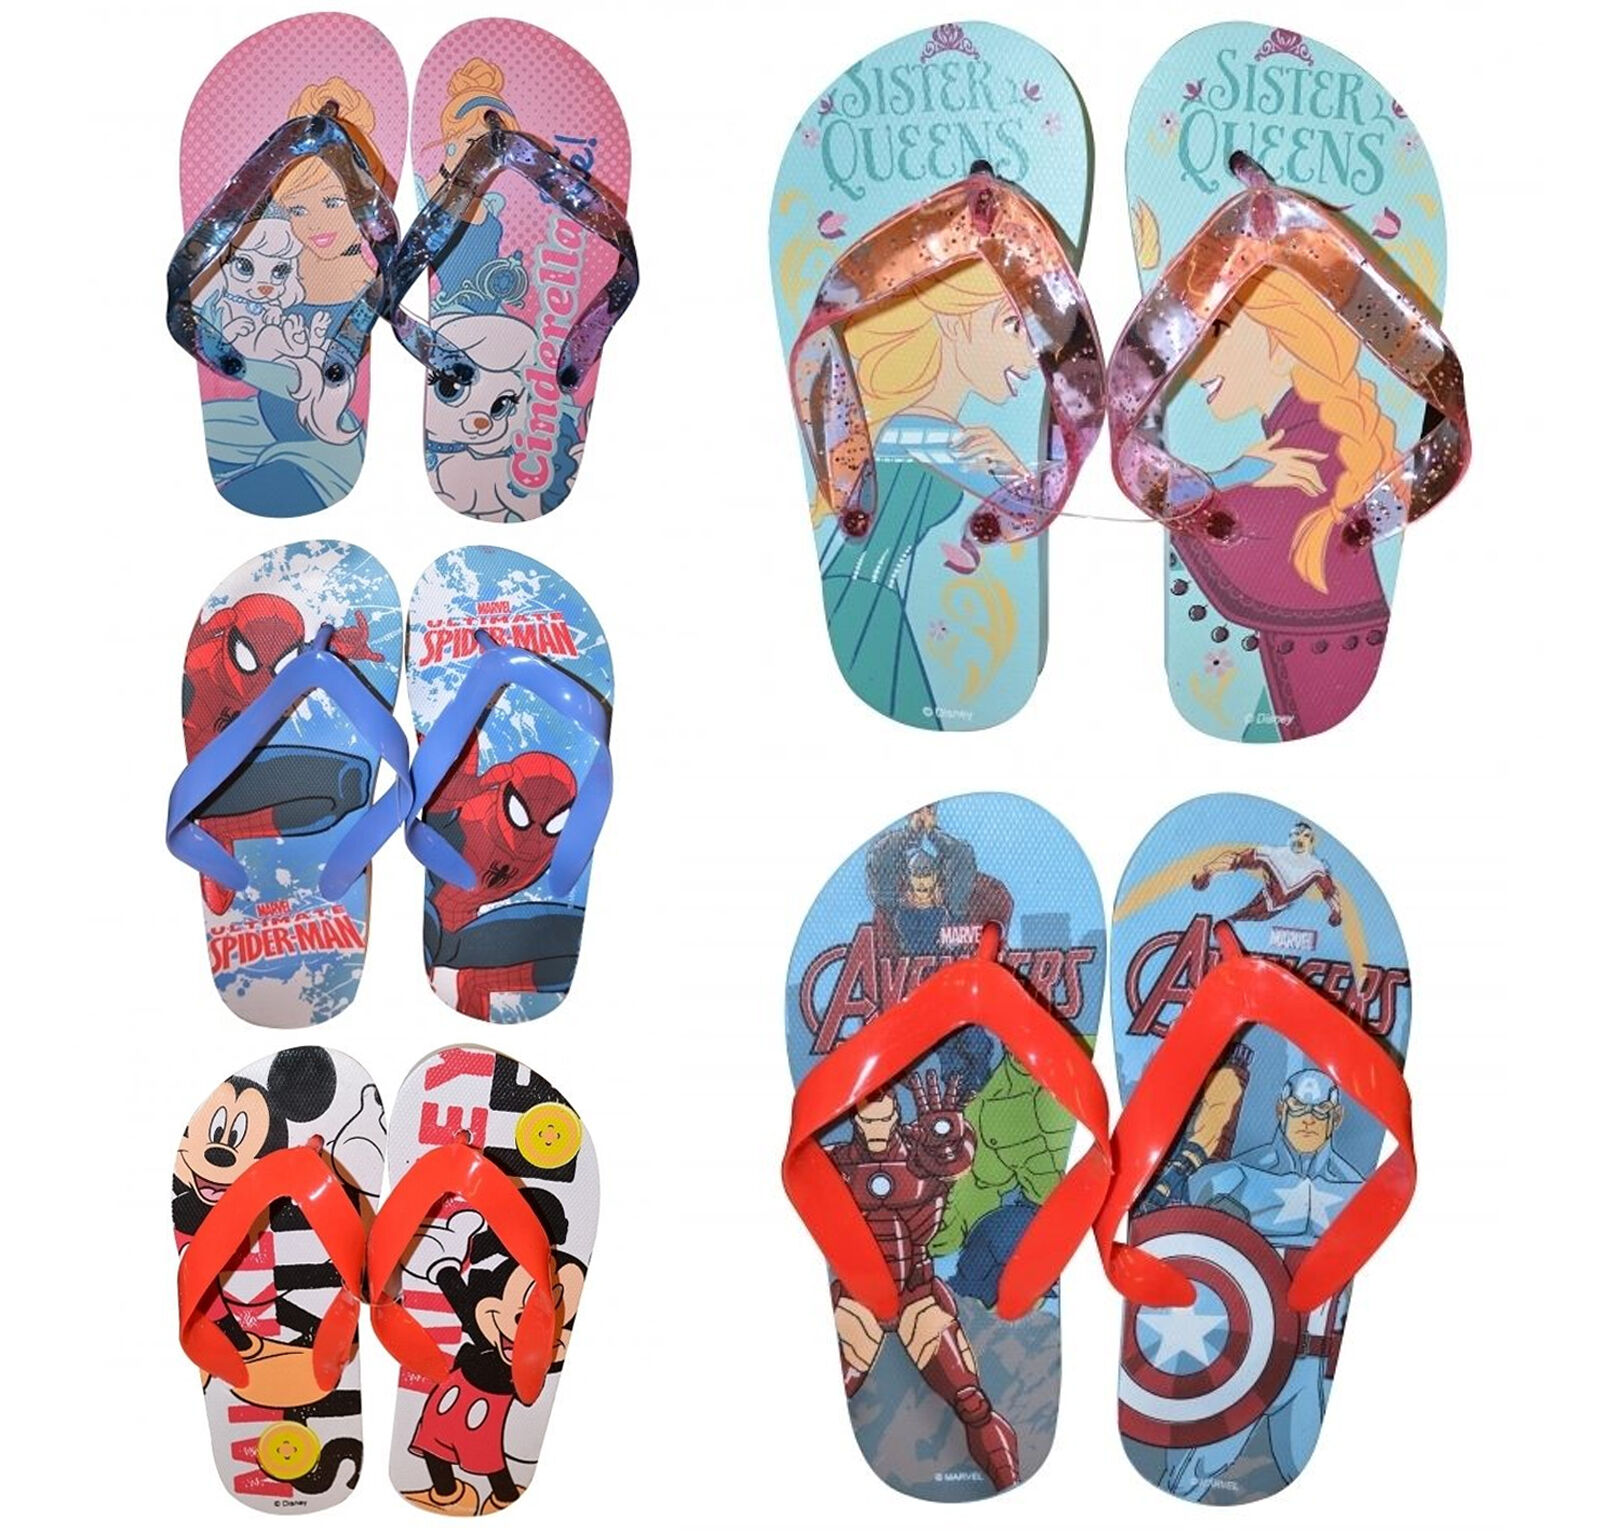 kinder disney figur princess frozen avengers flip flop strand schuhwerk ebay. Black Bedroom Furniture Sets. Home Design Ideas